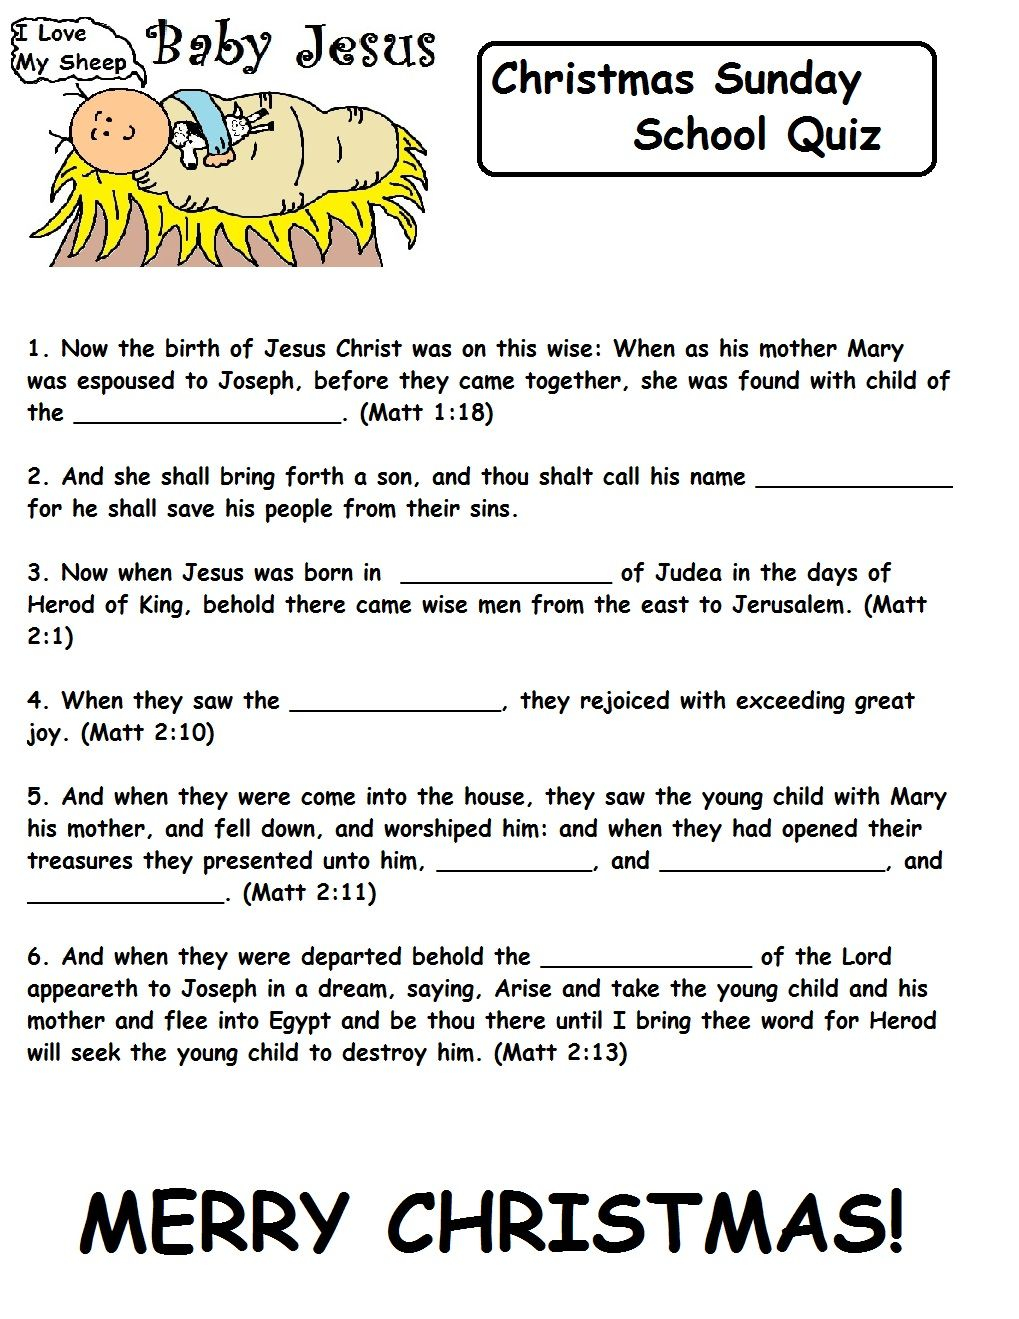 Church House Collection Blog: Christmas Quizzes For Sunday